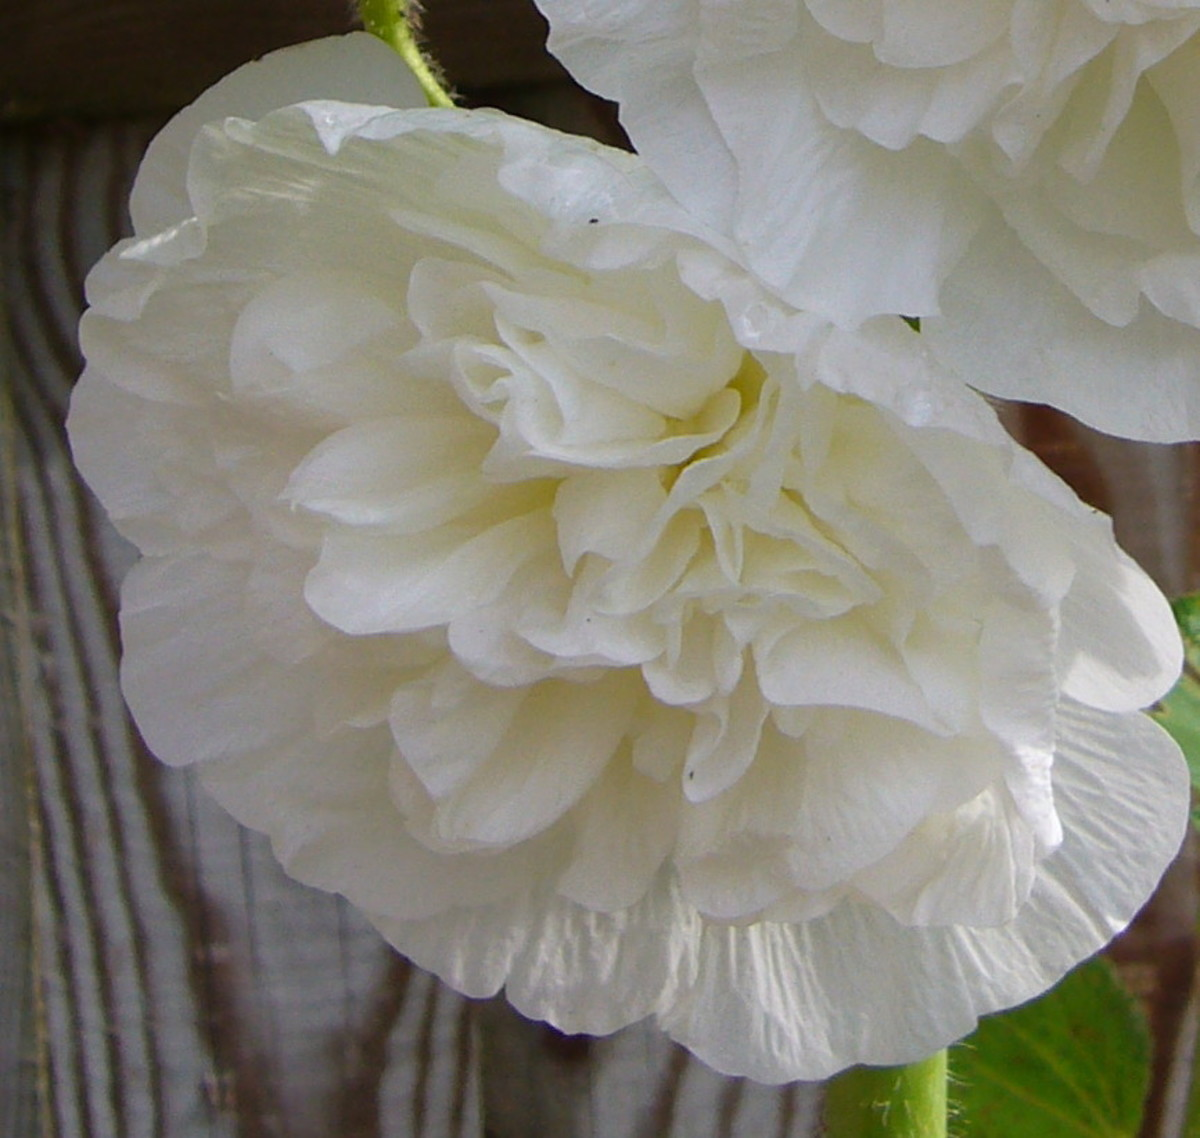 a white hollyhock flower